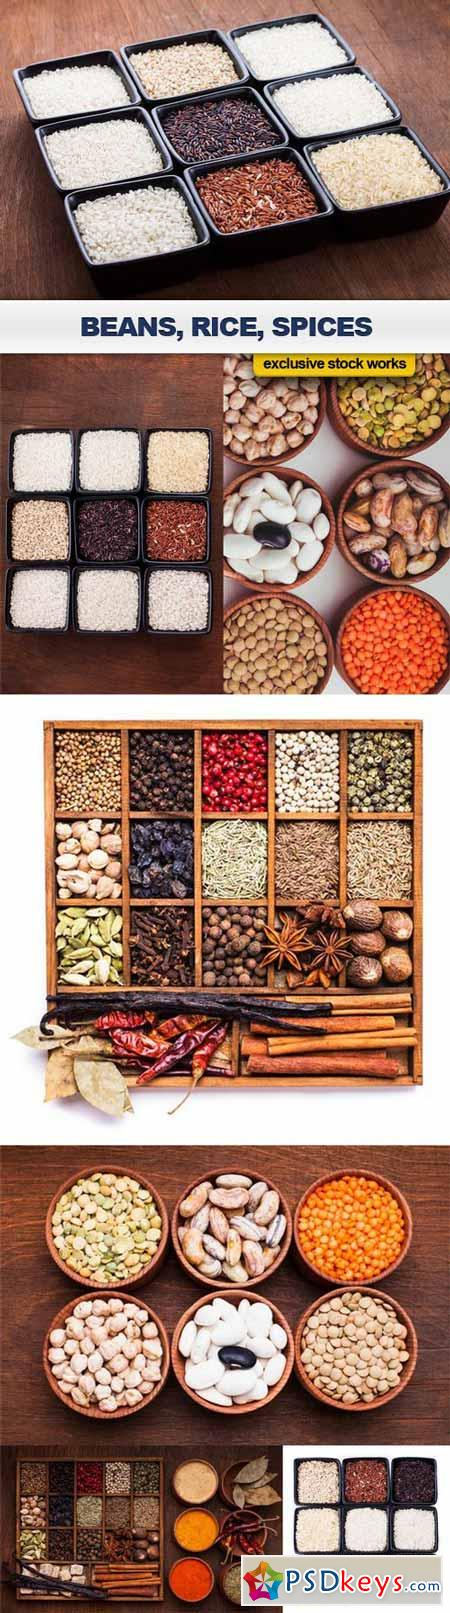 Beans, Rice, Spices - 7 UHQ JPEG